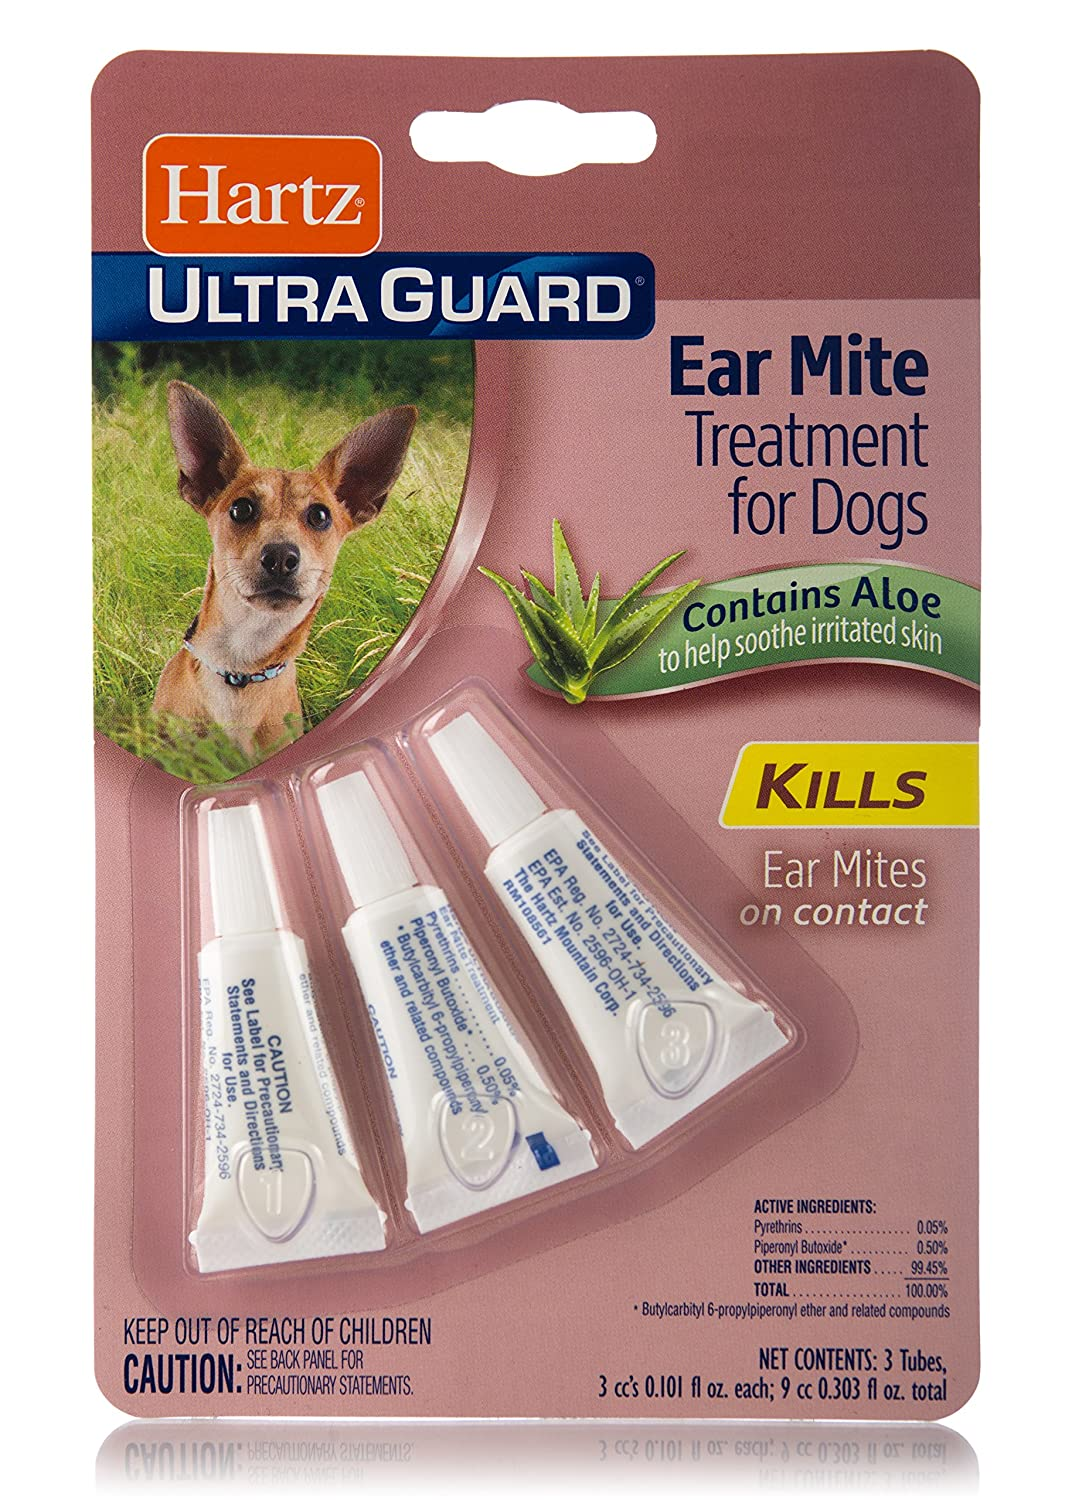 HOW TO GET RID OF EAR MITES IN DOGS FAST